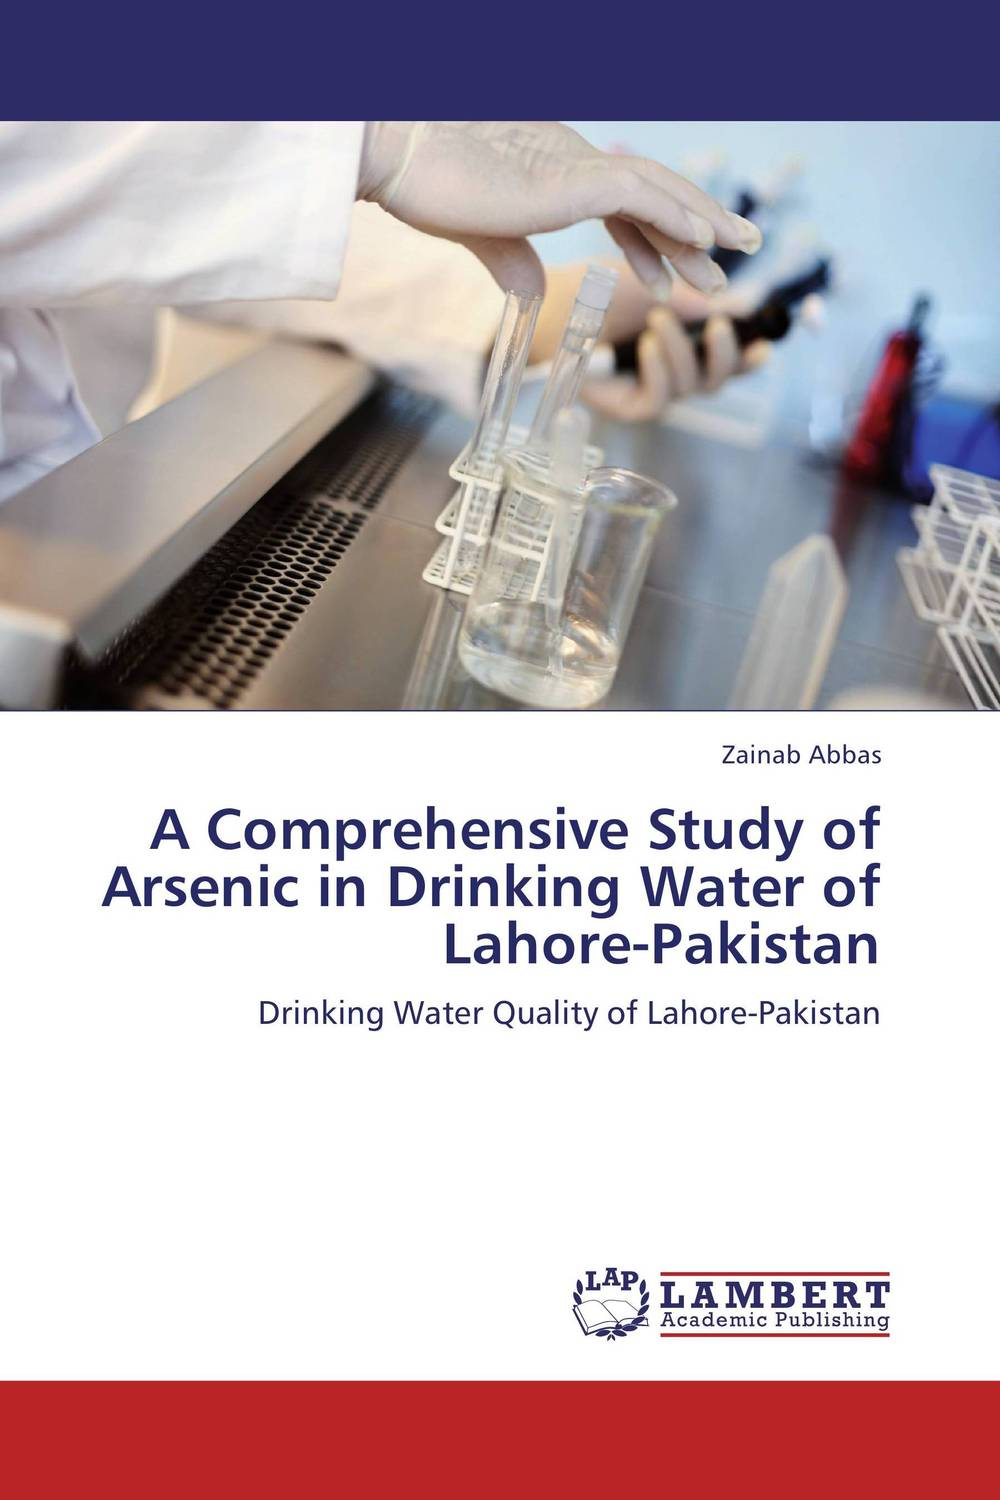 A Comprehensive Study of Arsenic in Drinking Water of Lahore-Pakistan higher than the eagle soars a path to everest